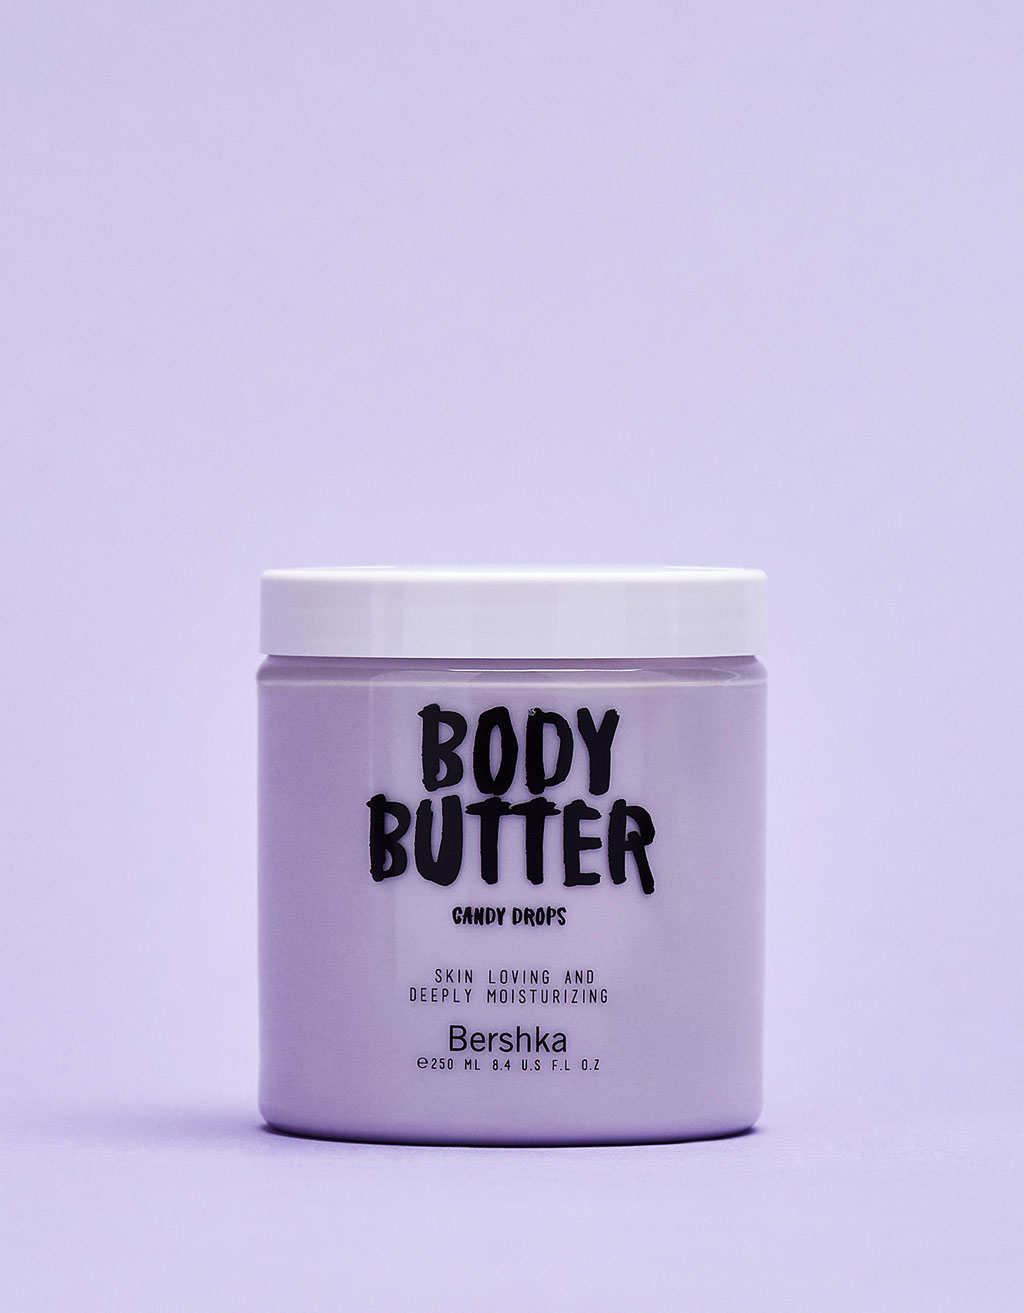 Bershka Body Butter Candy Drops 250ml